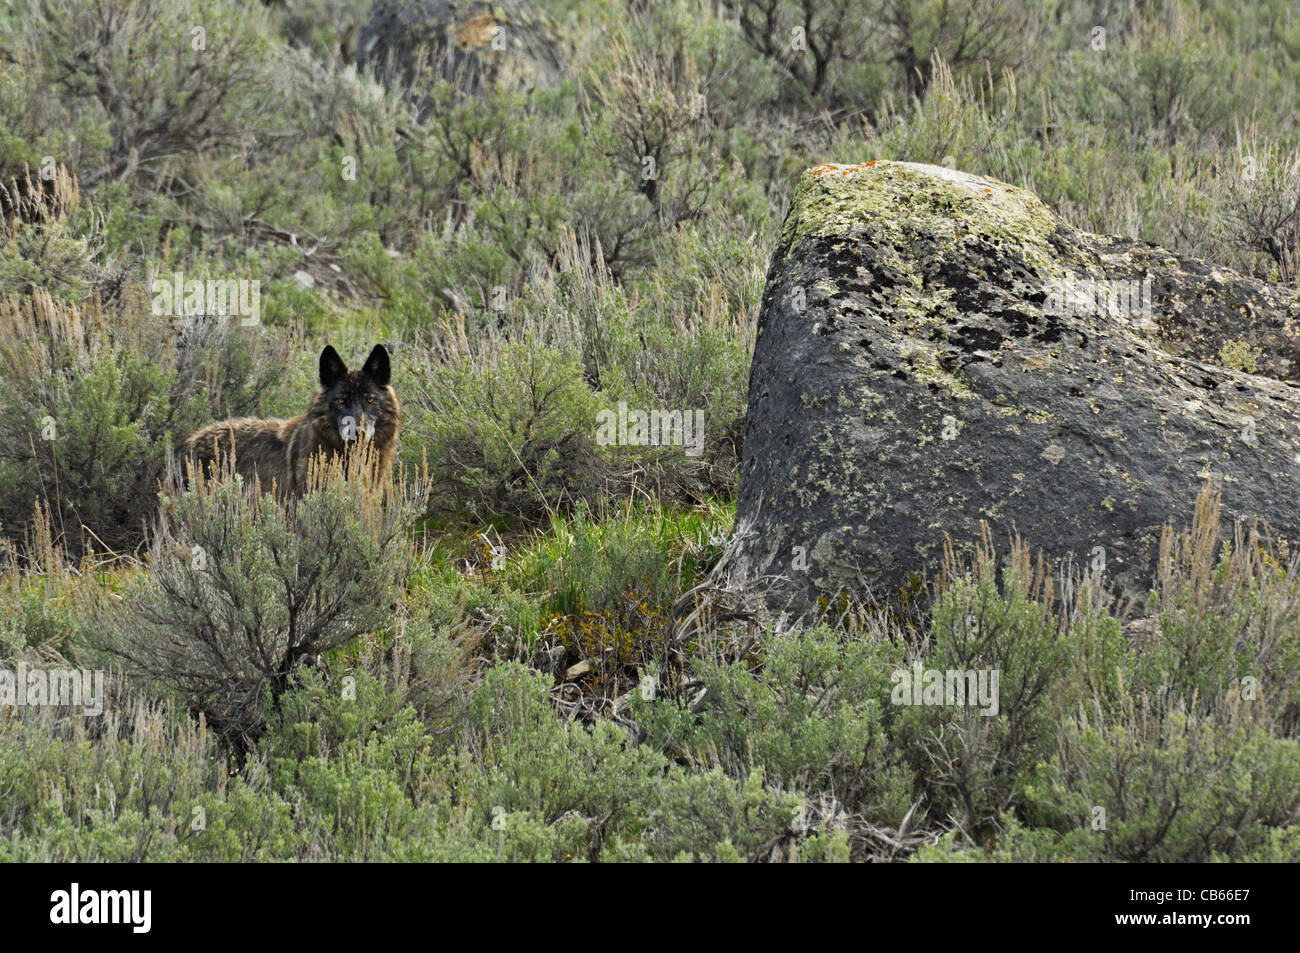 Black wolf in the environment - Stock Image